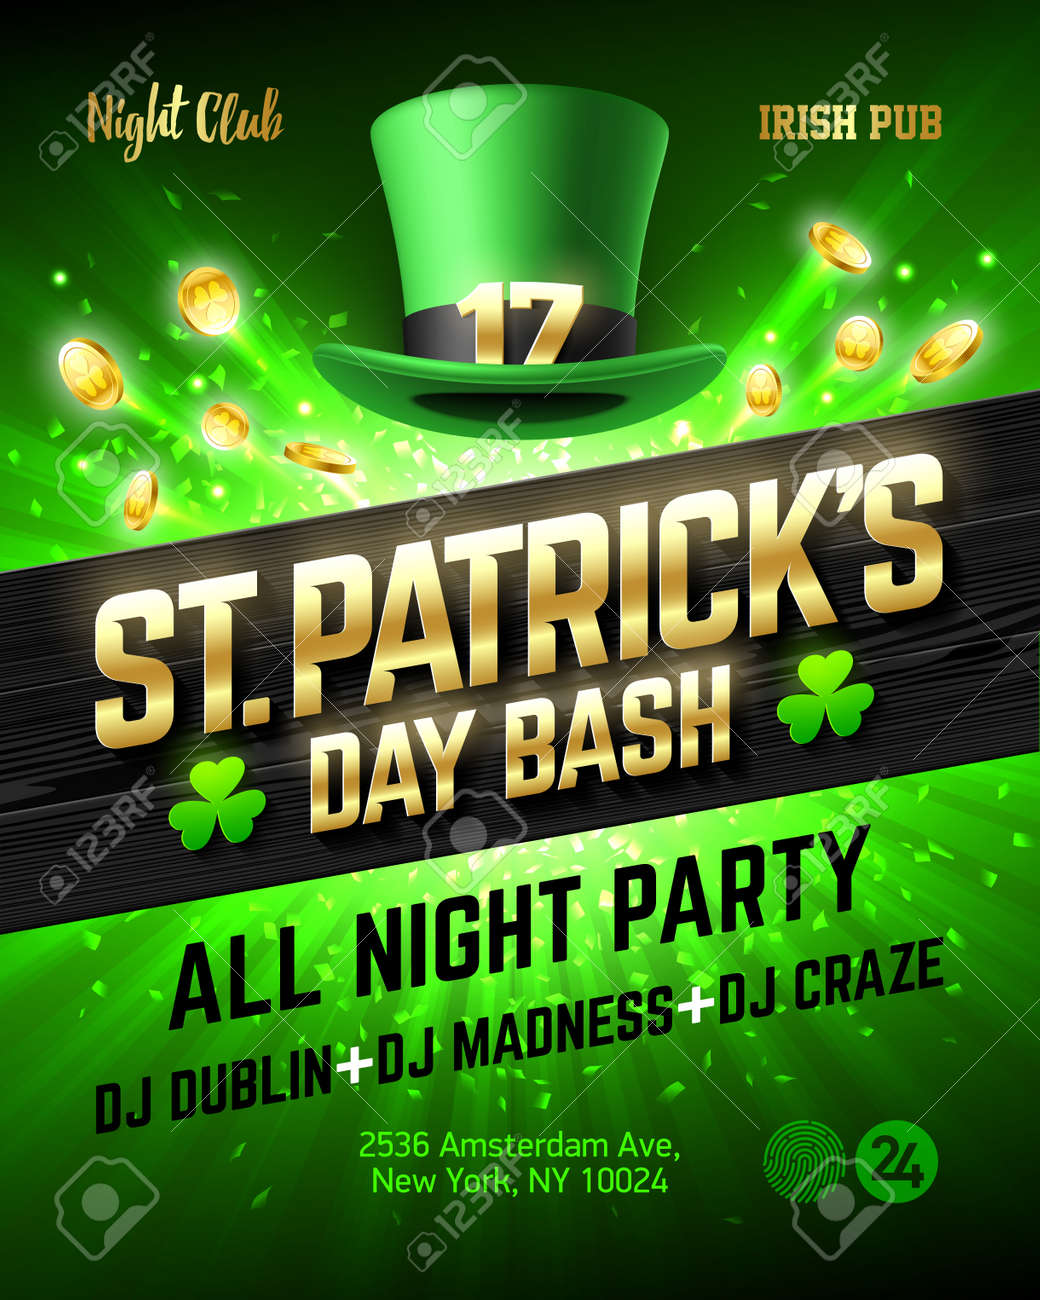 Saint Patrick\'s Day Bash Celebration Poster Design, 17 March ...